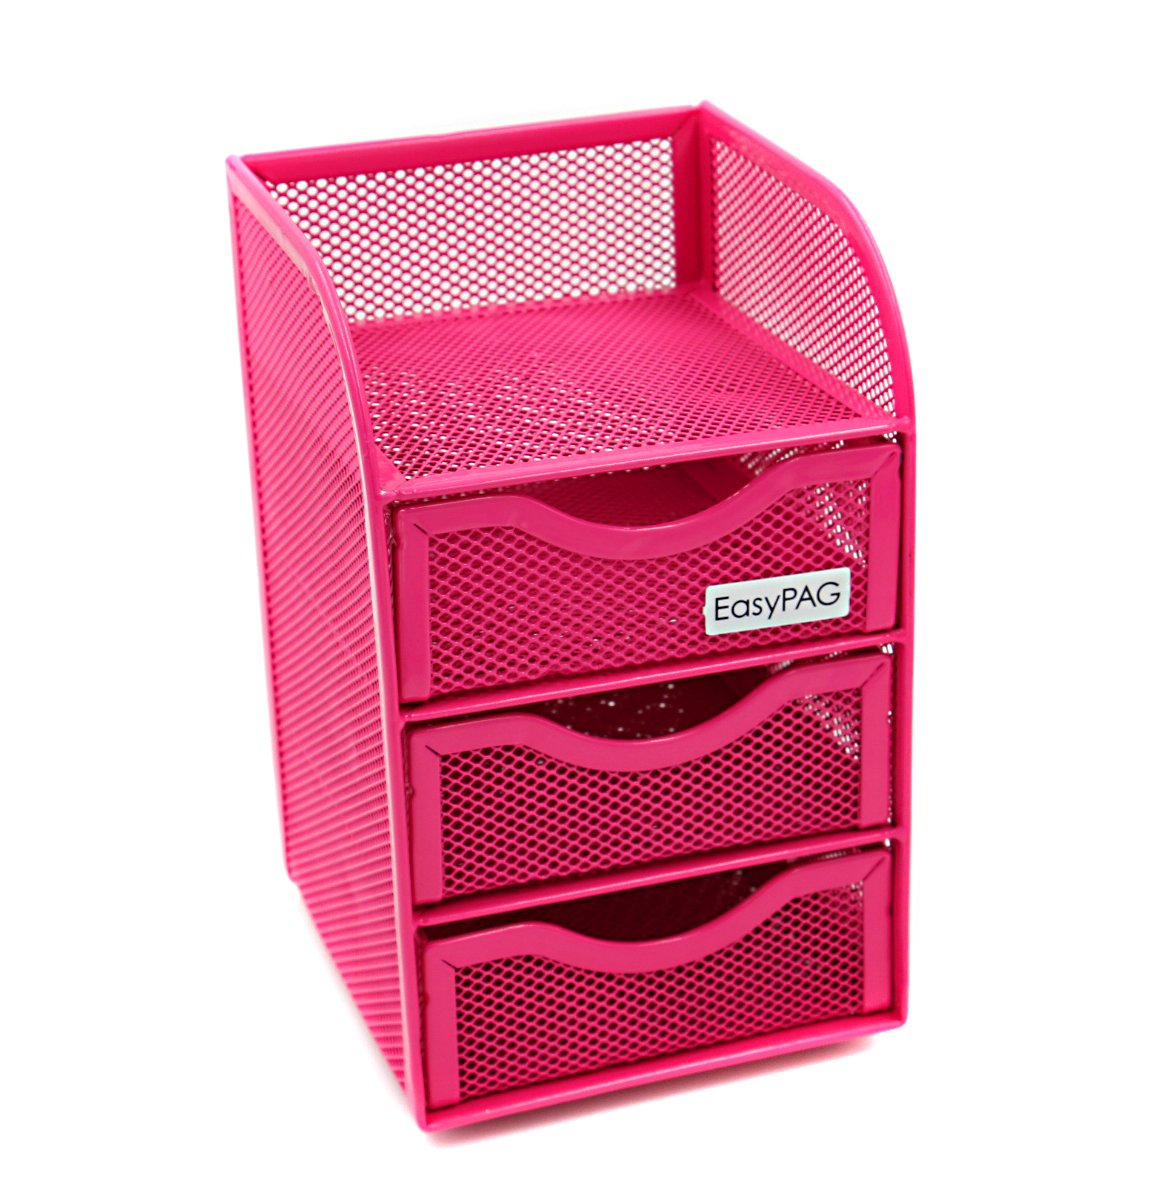 EasyPAG Mesh Desk Accessorie Organizer 3 Drawer Mini Hutch Office Supplies Caddy, Pink